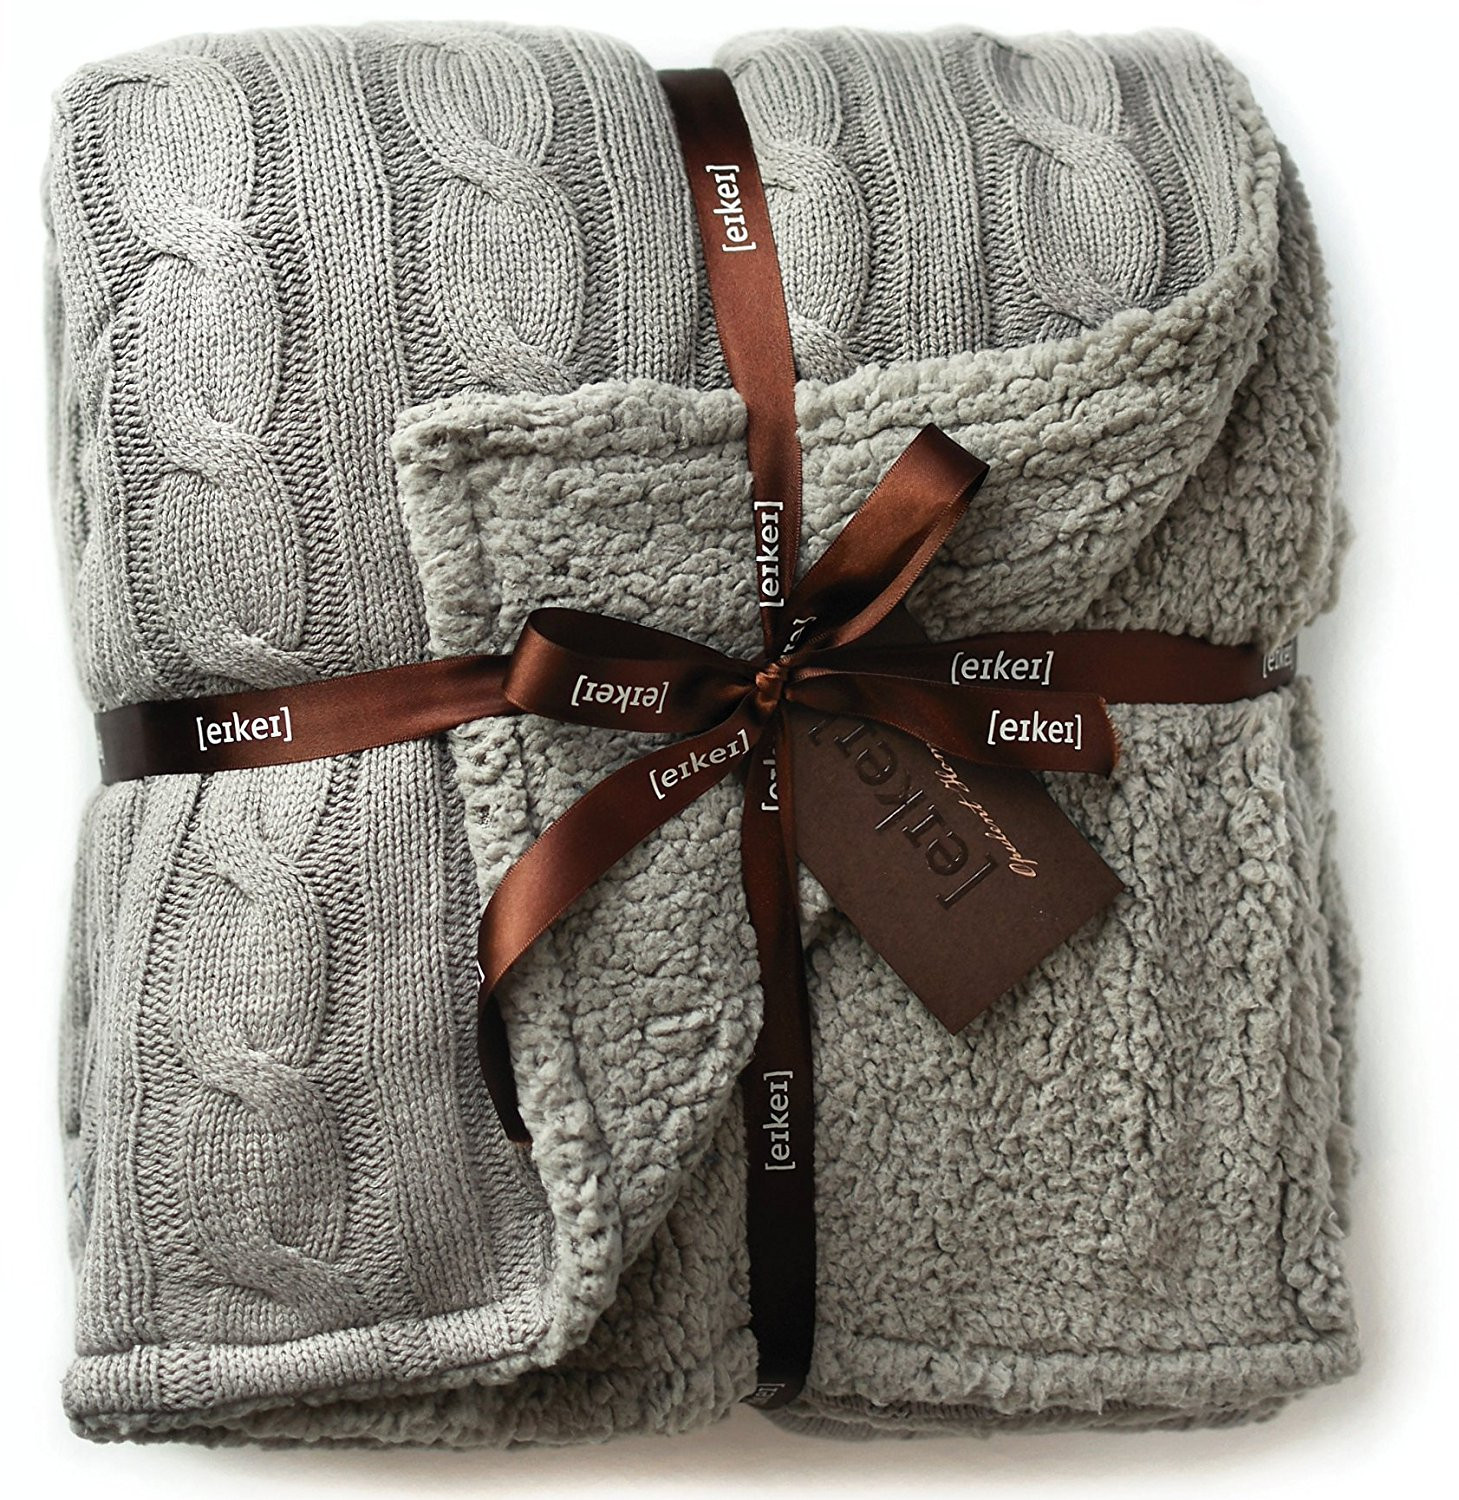 Best Of Cable Knit Reversible Sherpa Throw Blanket – [eikei] Cable Knit Sweater Blanket Of Incredible 50 Photos Cable Knit Sweater Blanket